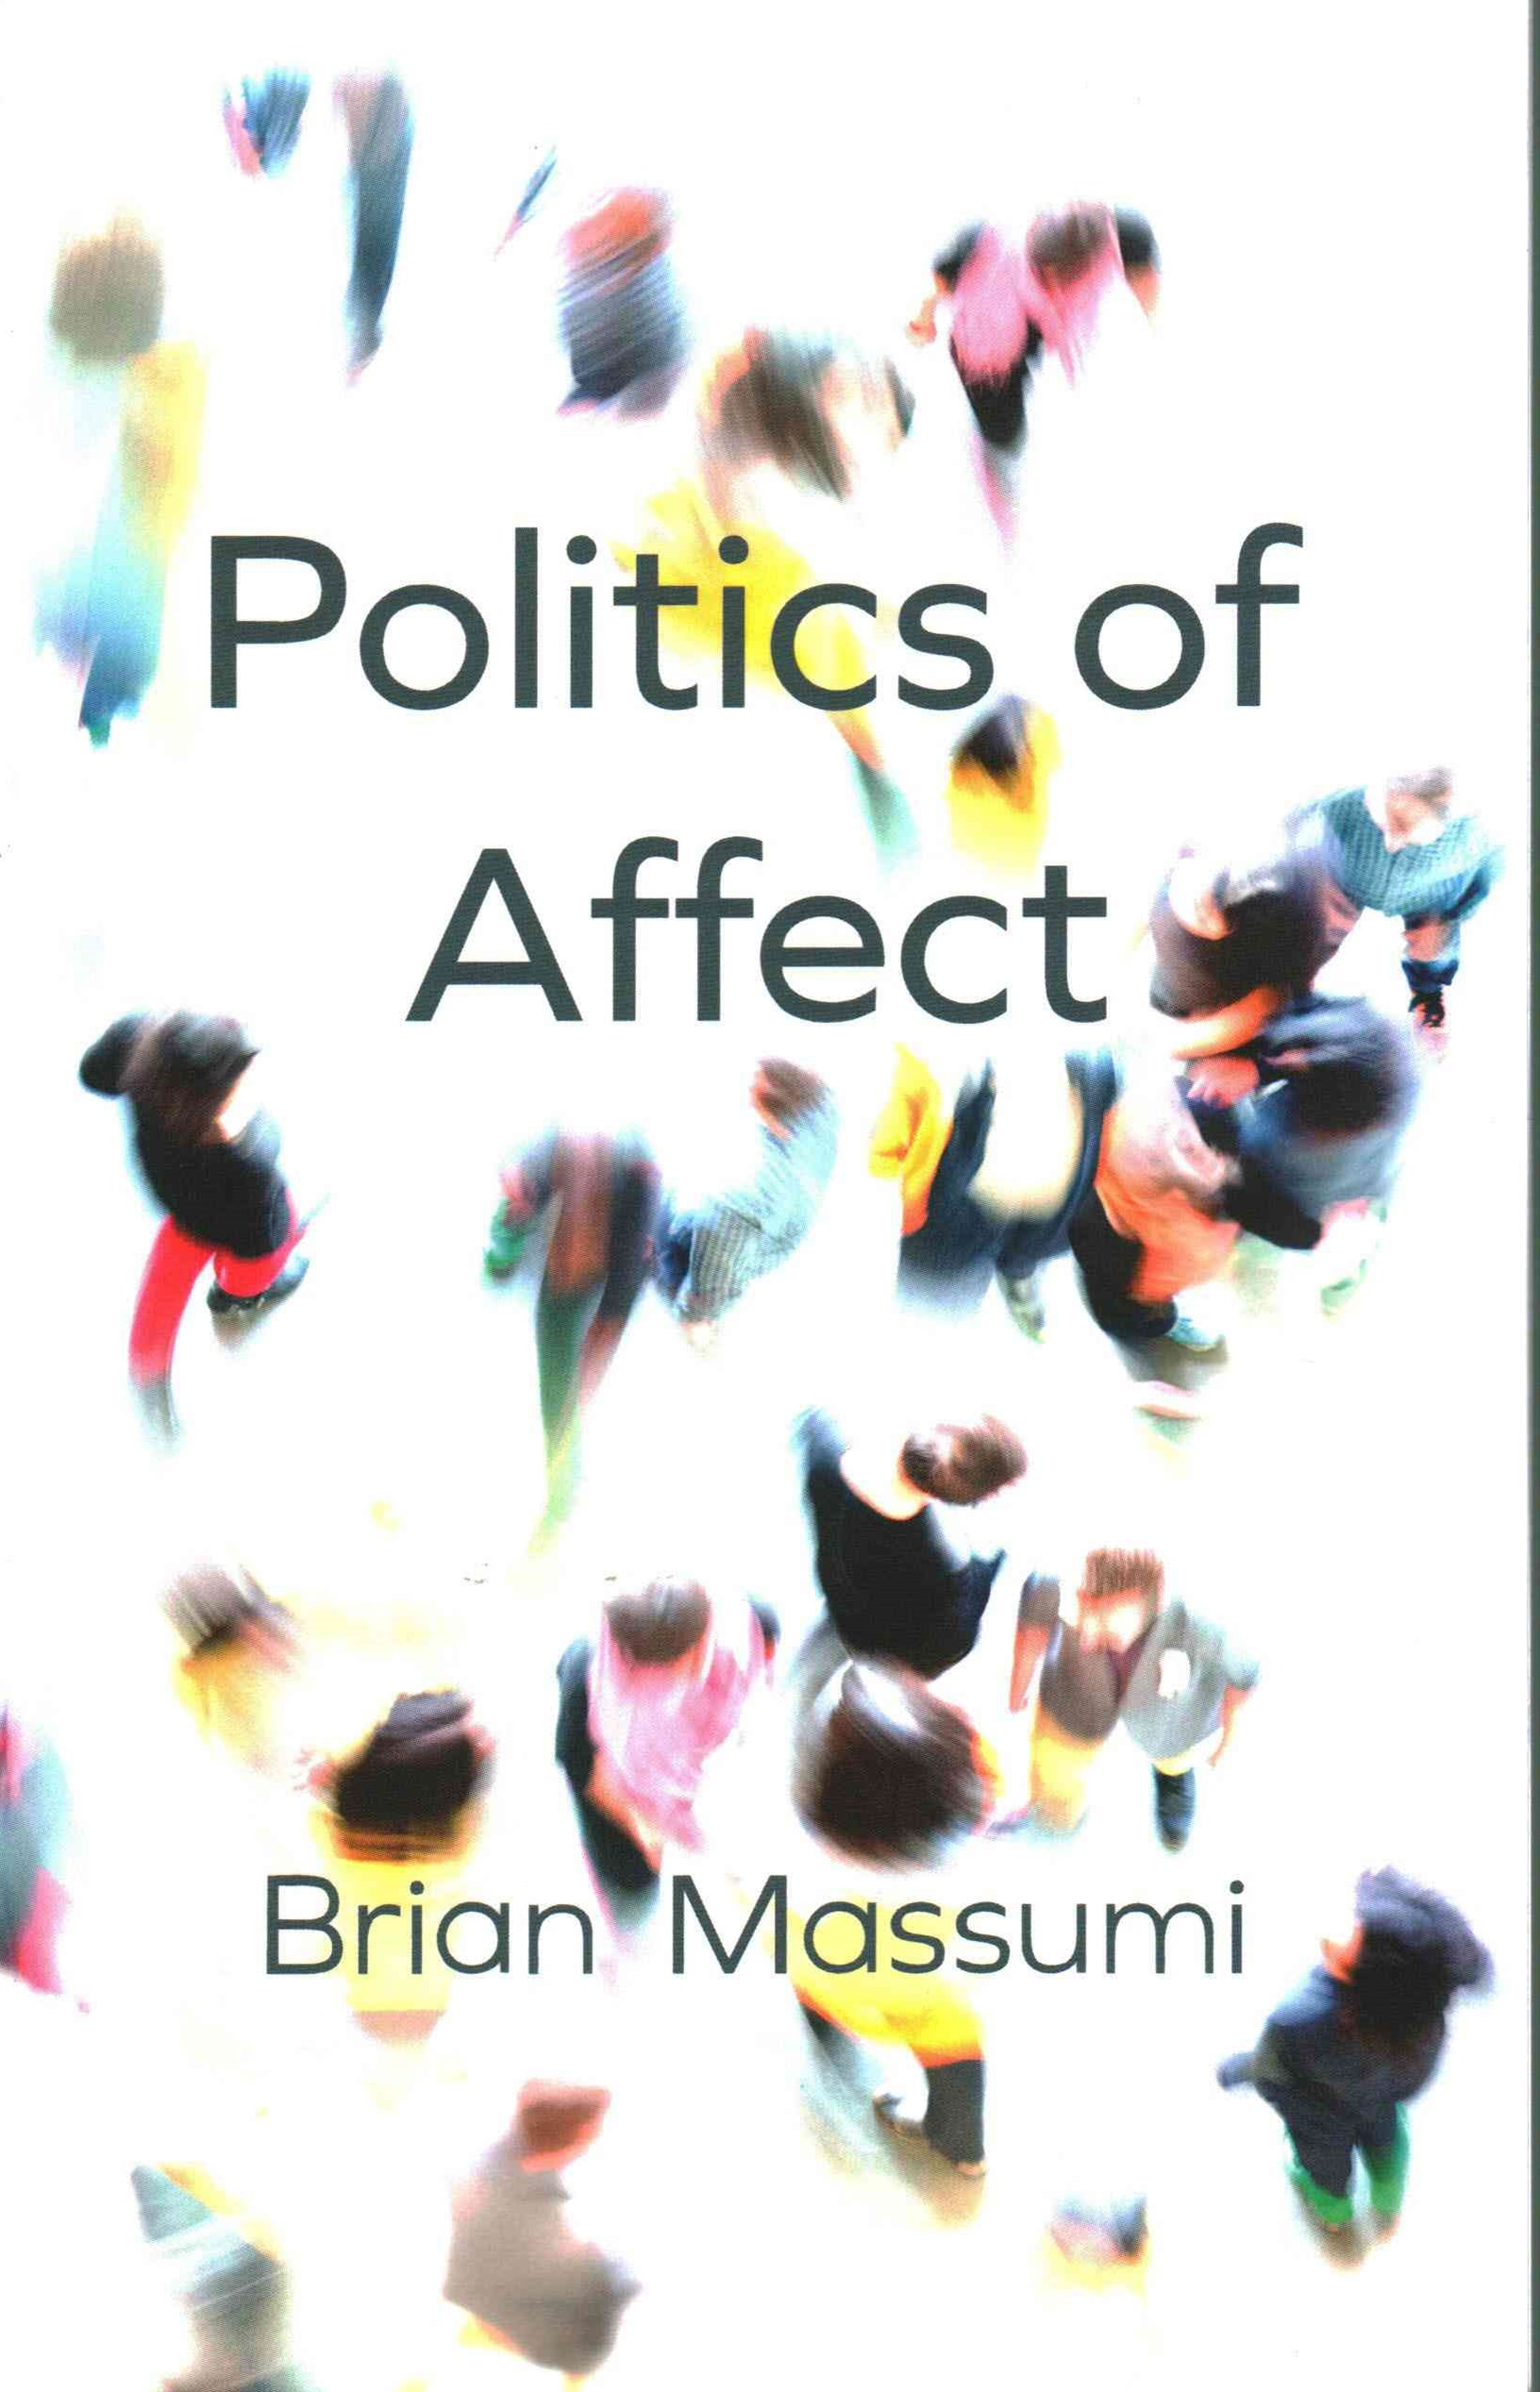 The Politics of Affect